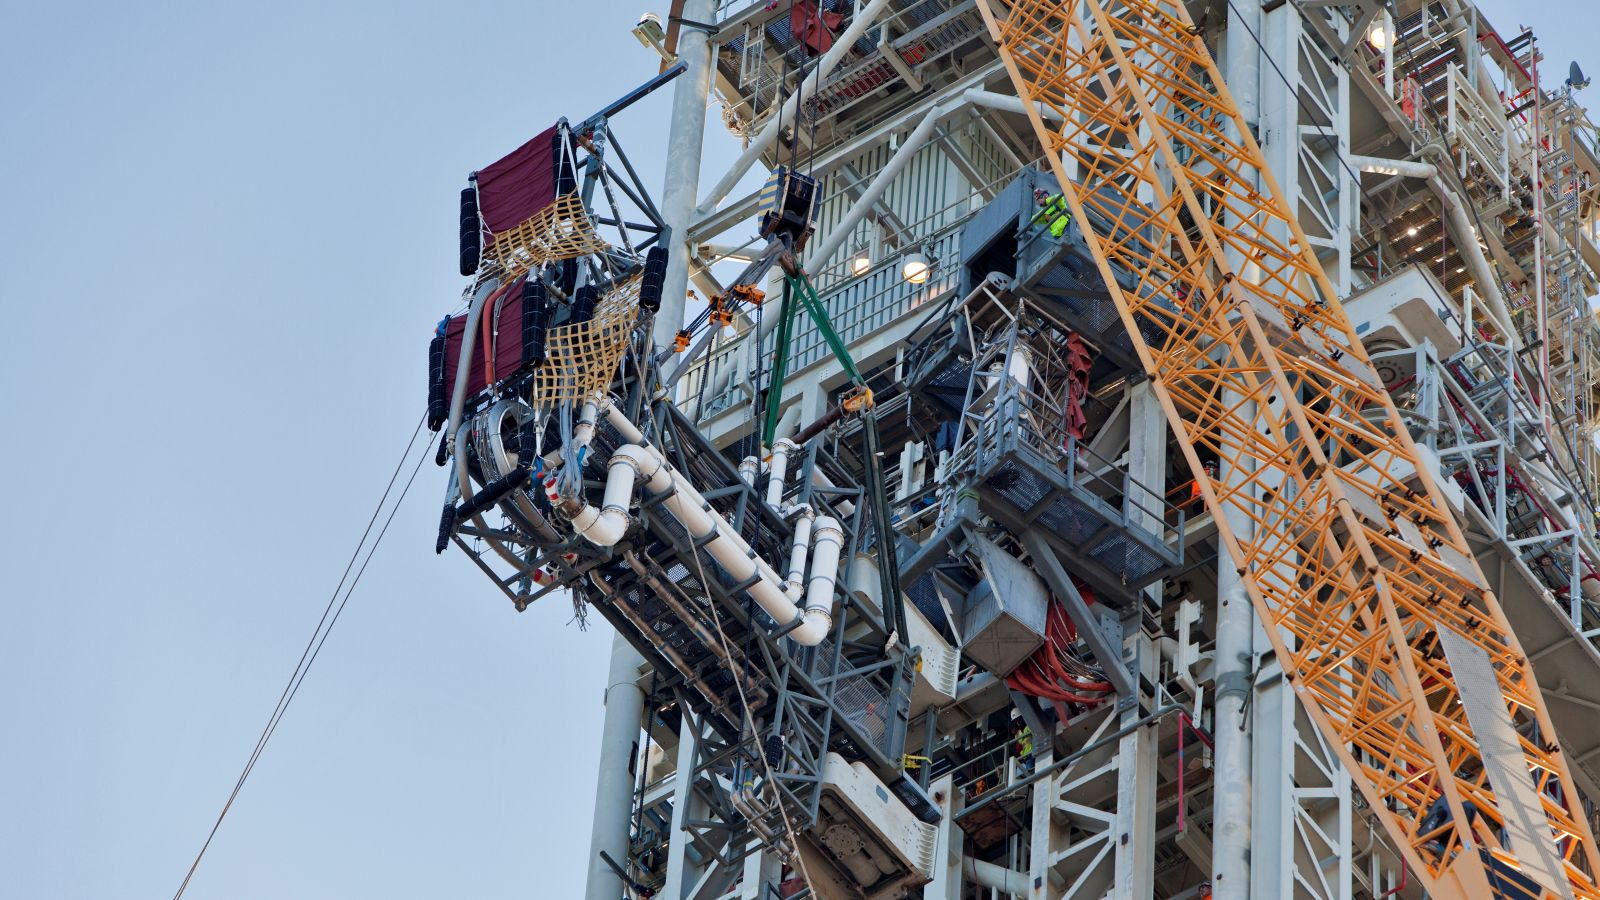 The ICPS umbilical is installed on NASA's SLS mobile launcher. Photo Credit: Ben Smegelsky / NASA